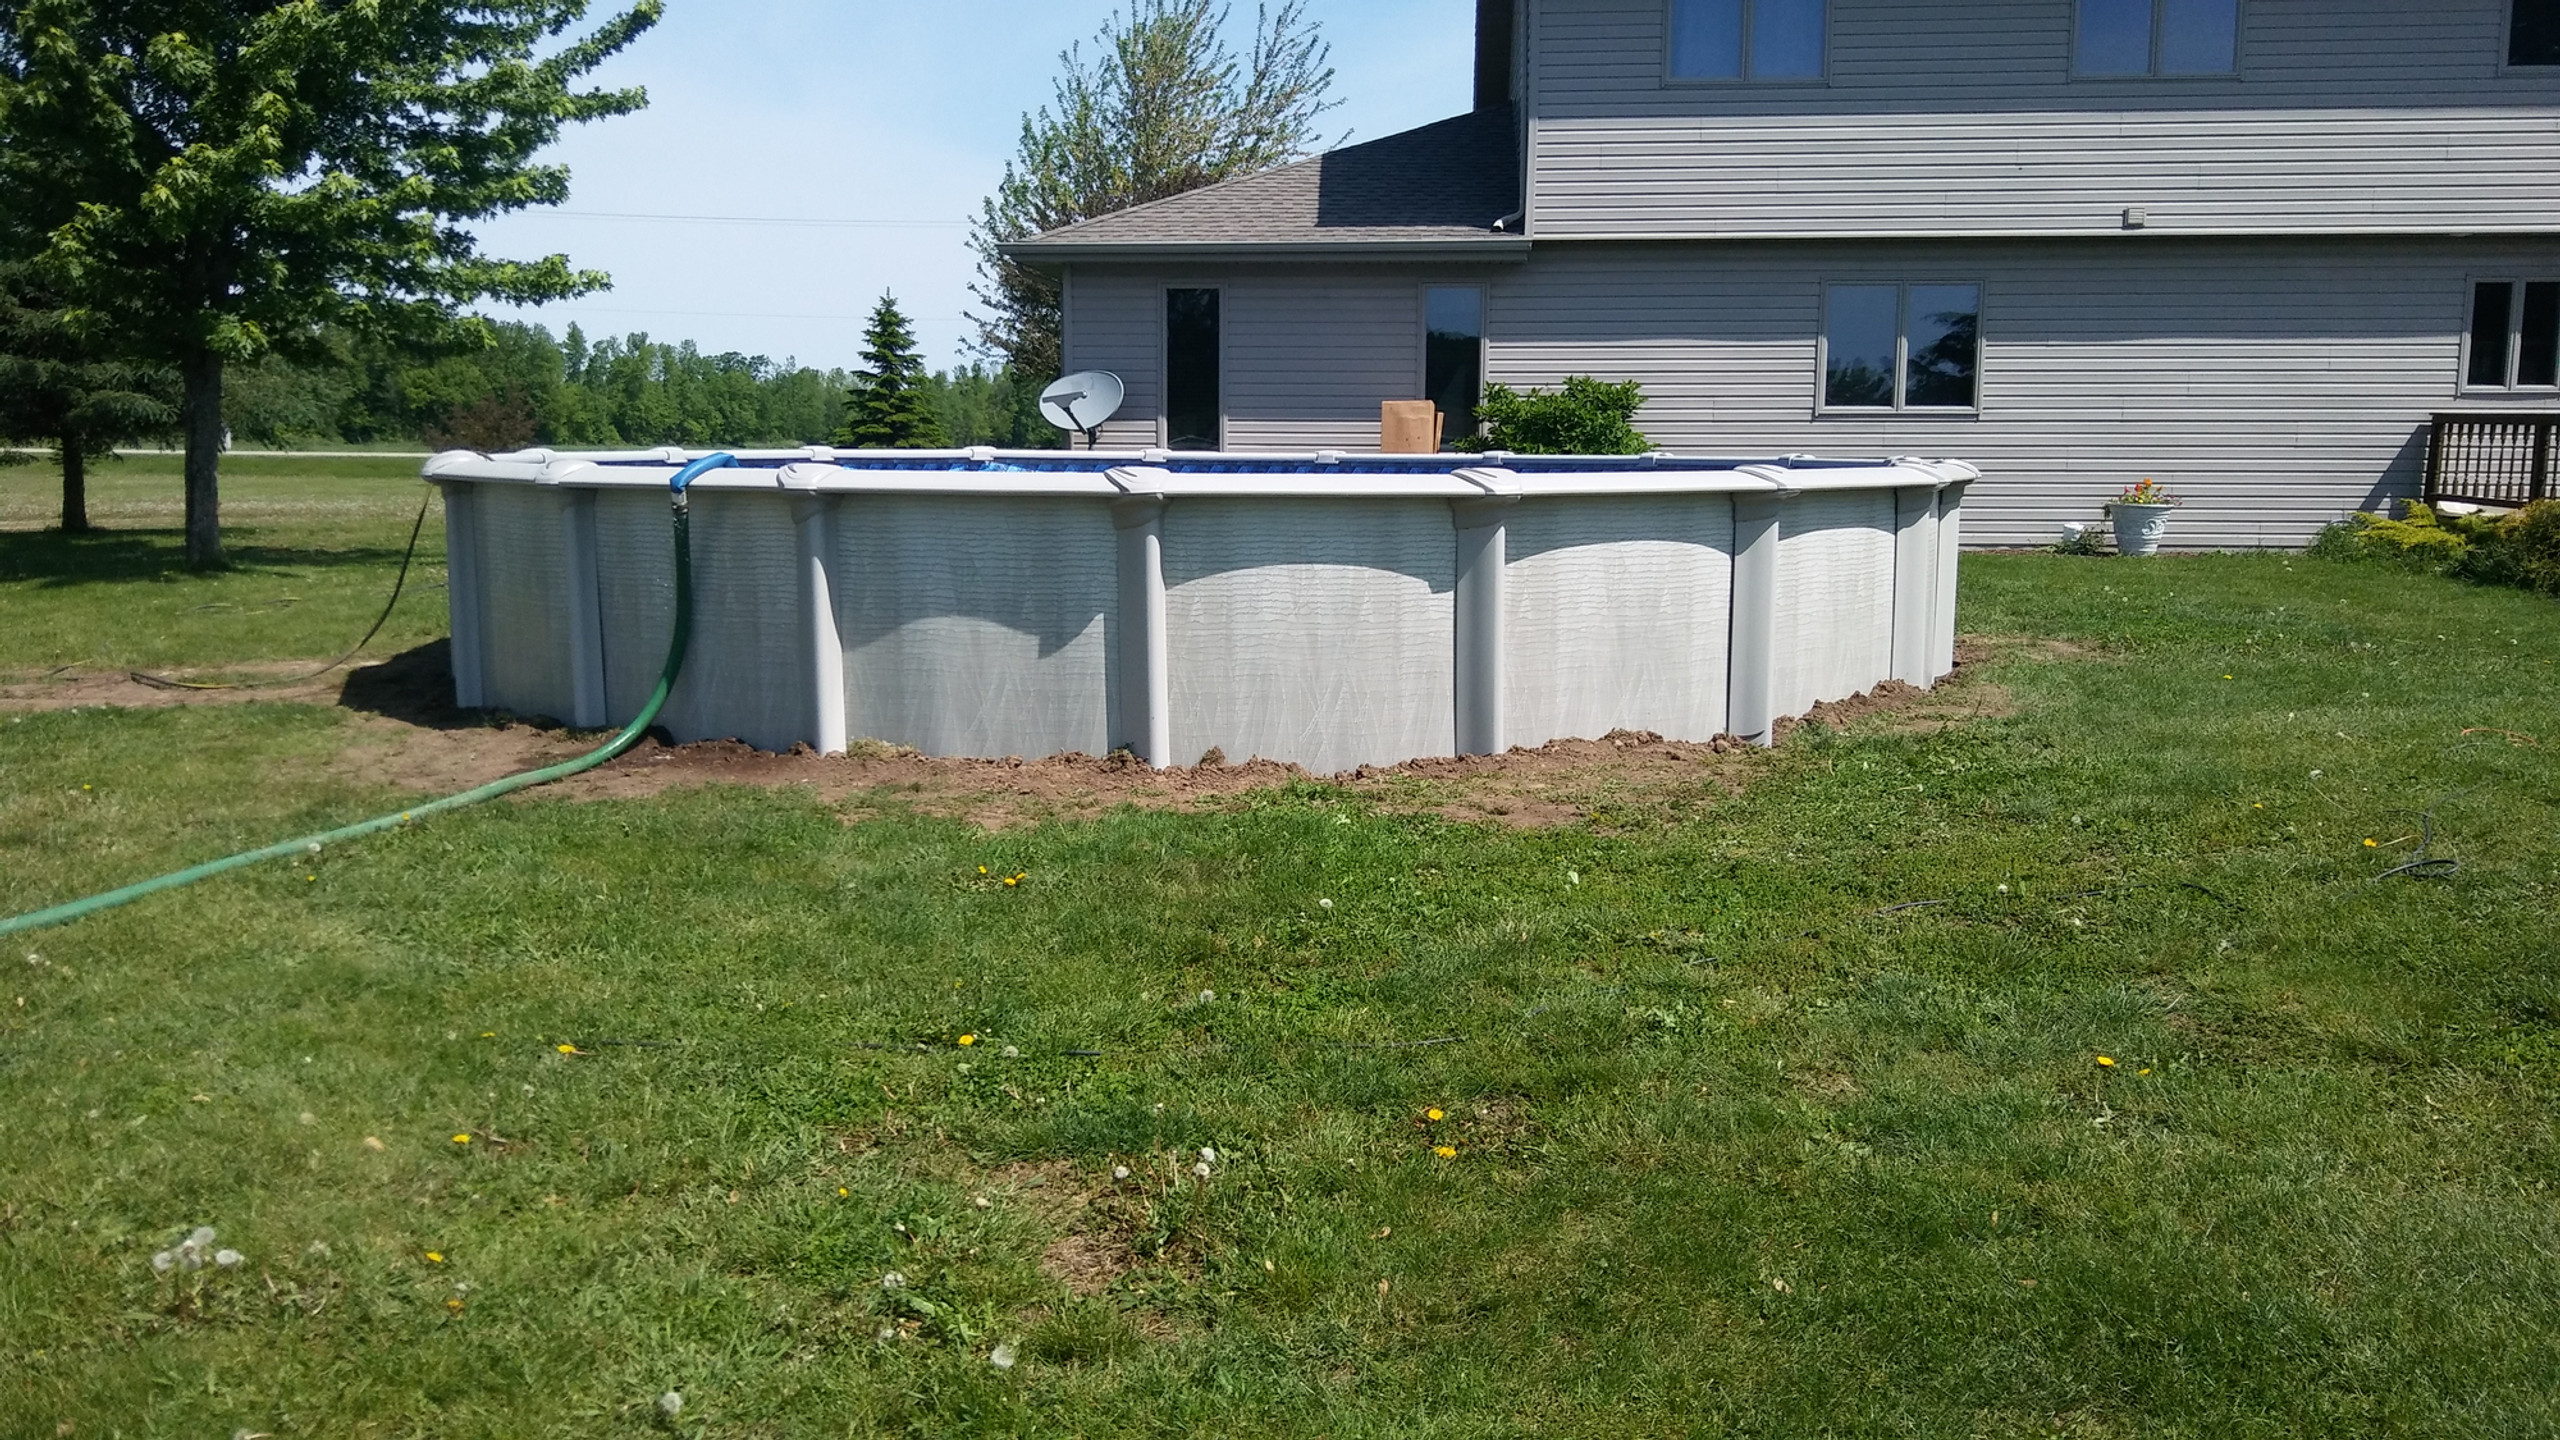 Another 27' Round Evolution Above Ground Pool from Pool Pros, built in Pulaski WI 2017.